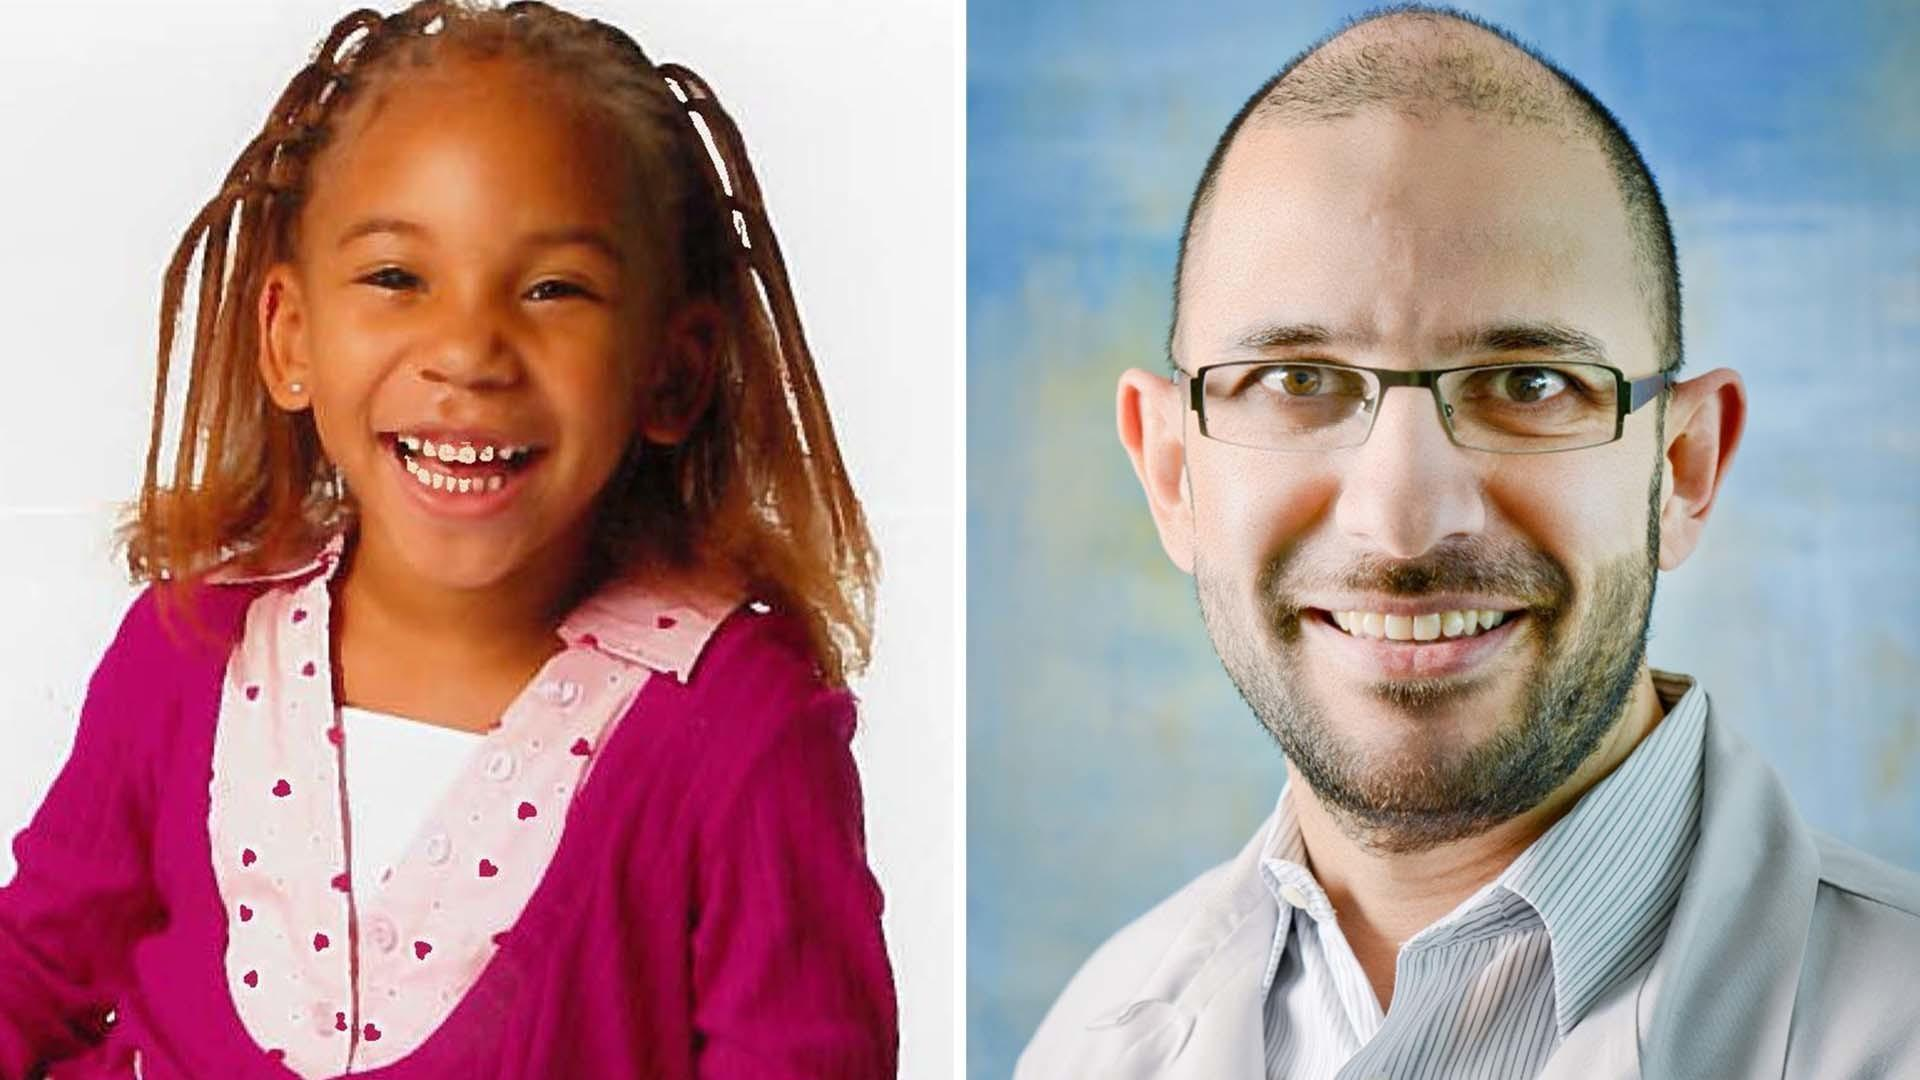 Jurors in doctor's civil trial overwhelmed by photos, details of 8-year-old's torture slaying